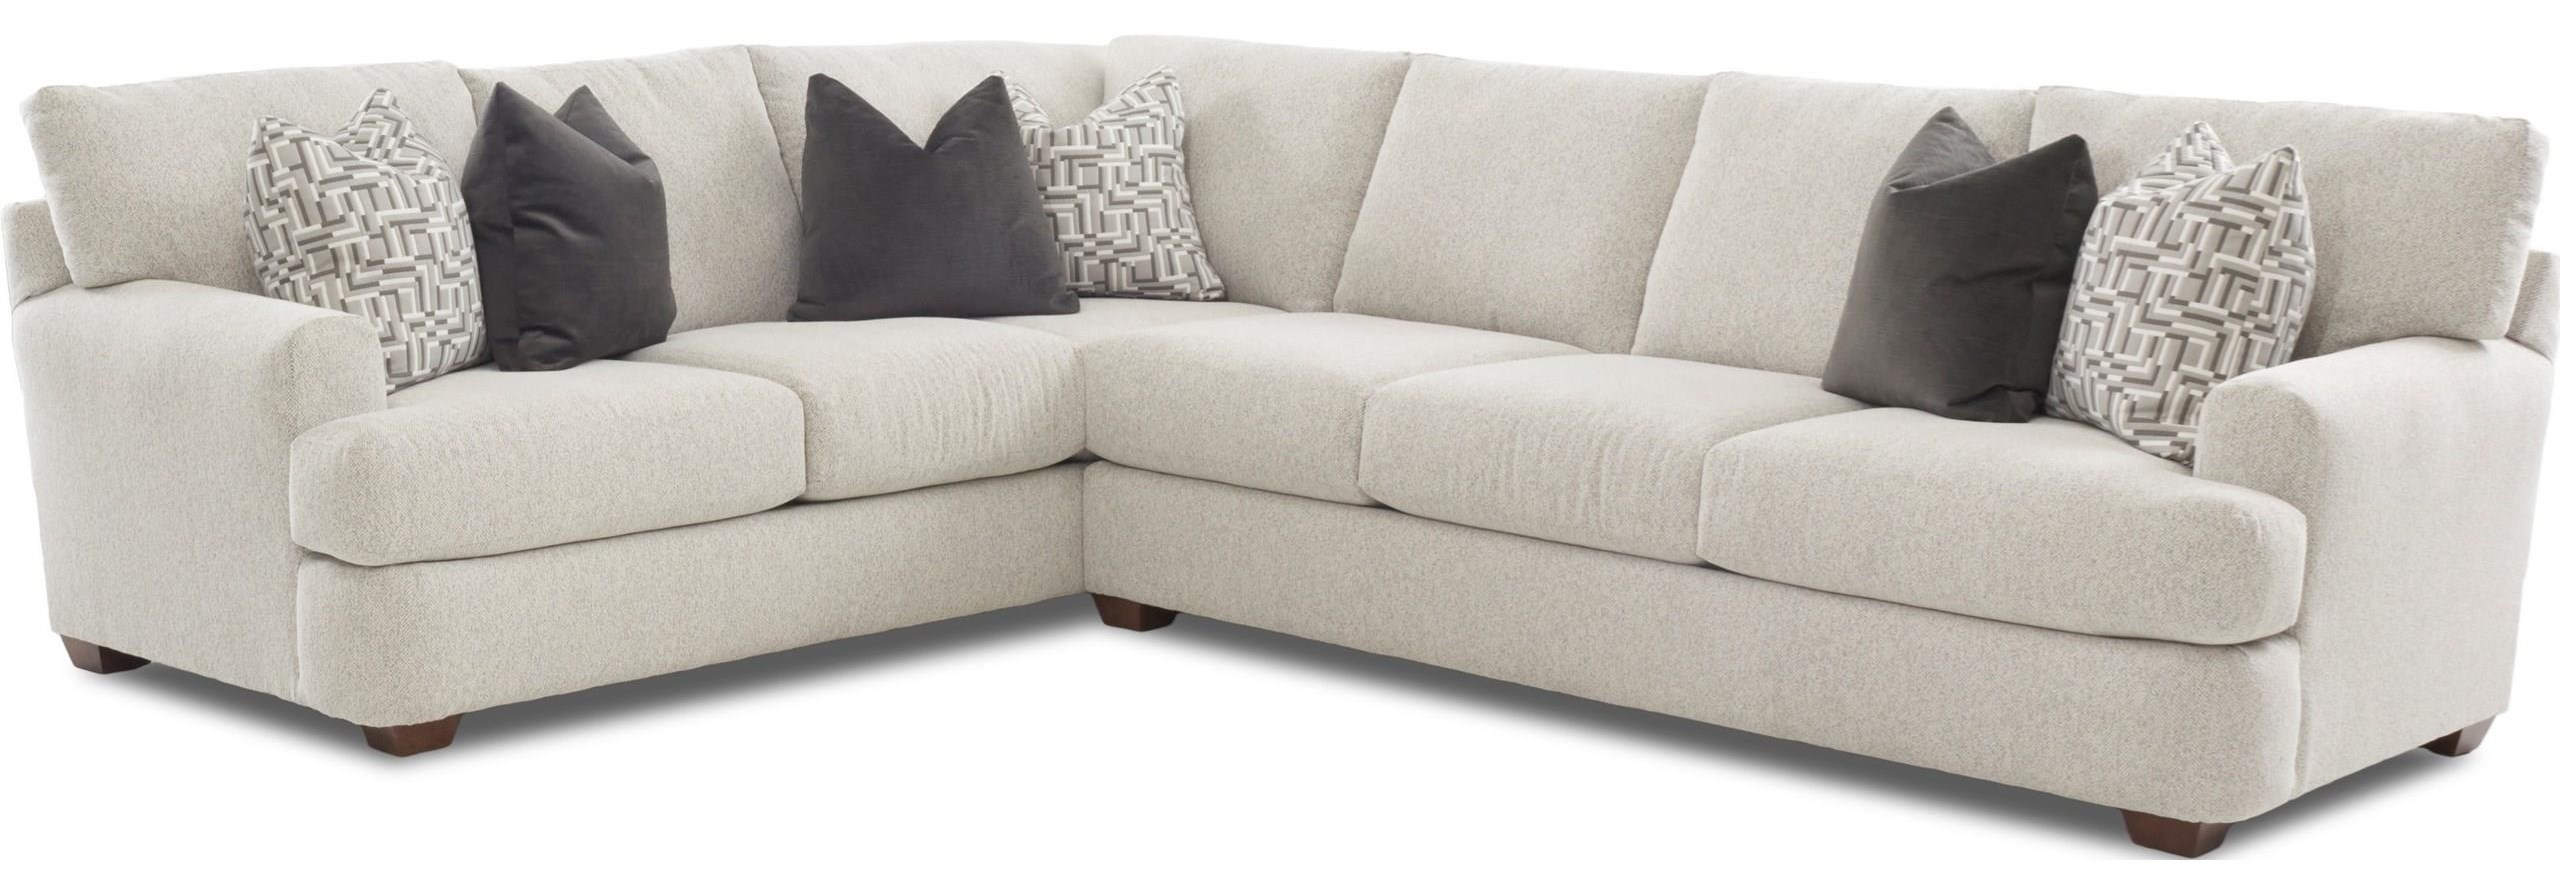 Dovetail 2PC Sectional Sofa at Rotmans